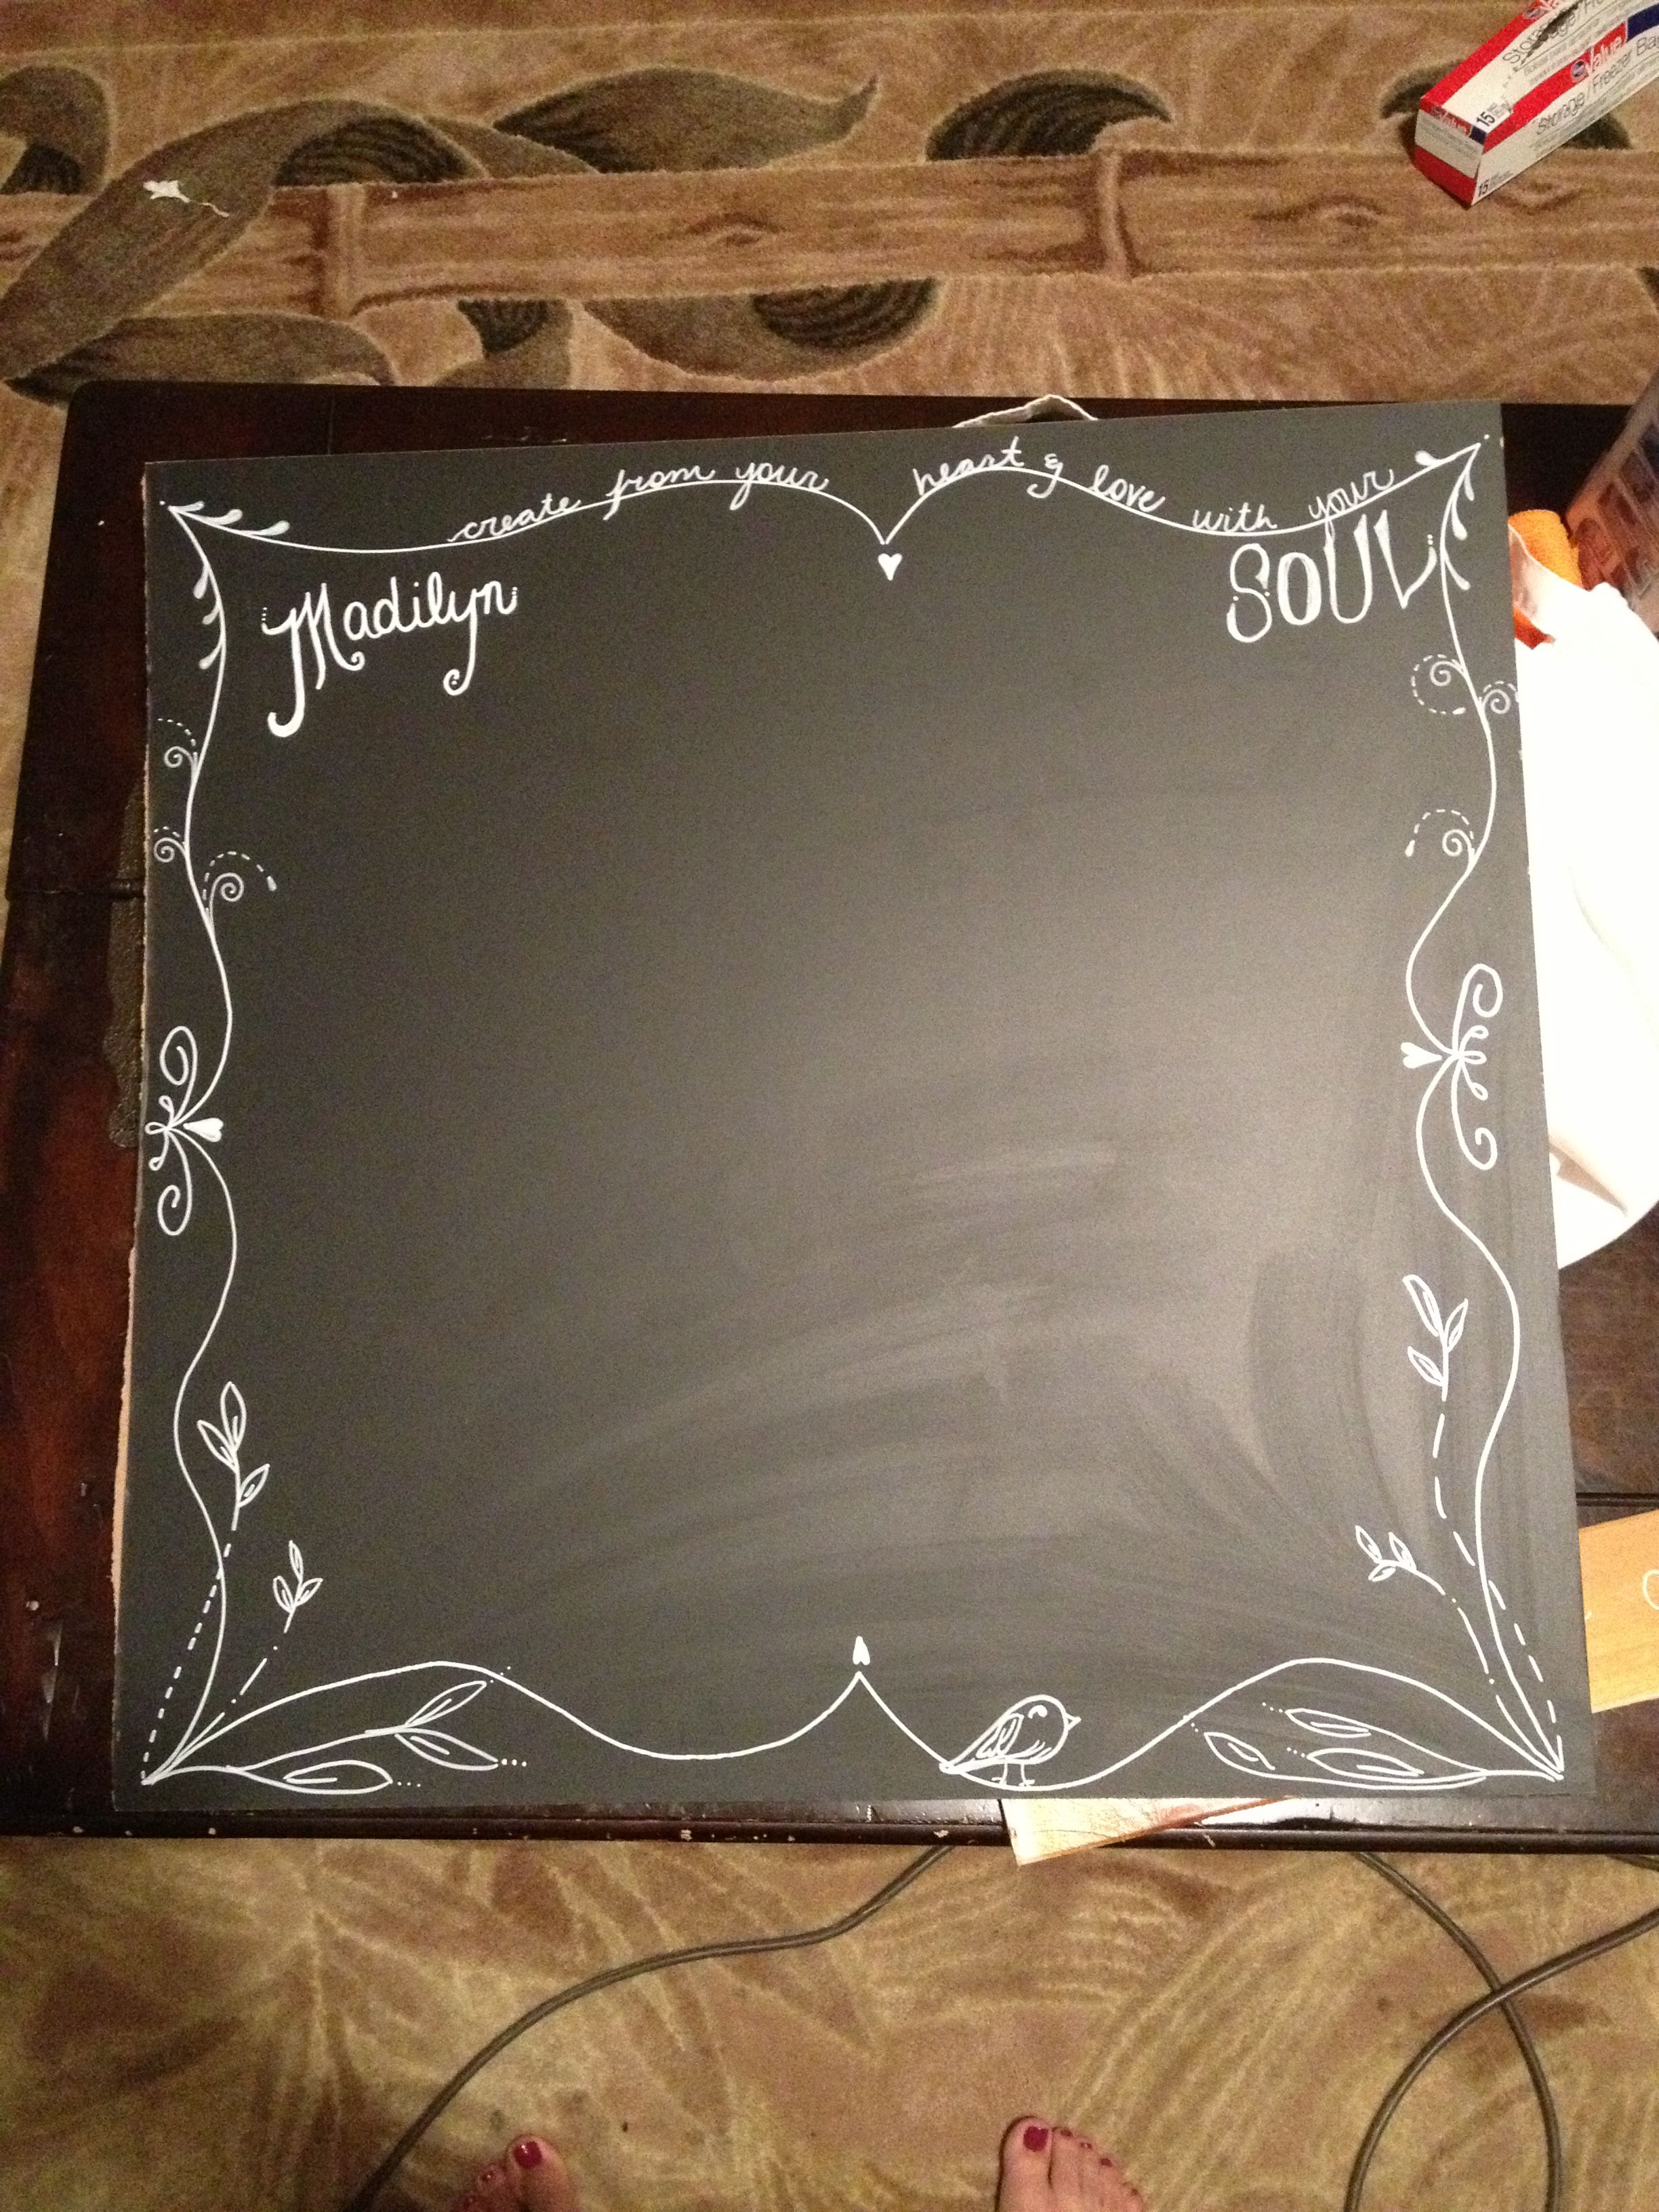 Chalkboard From Home Depot And Drew On It With White Paint